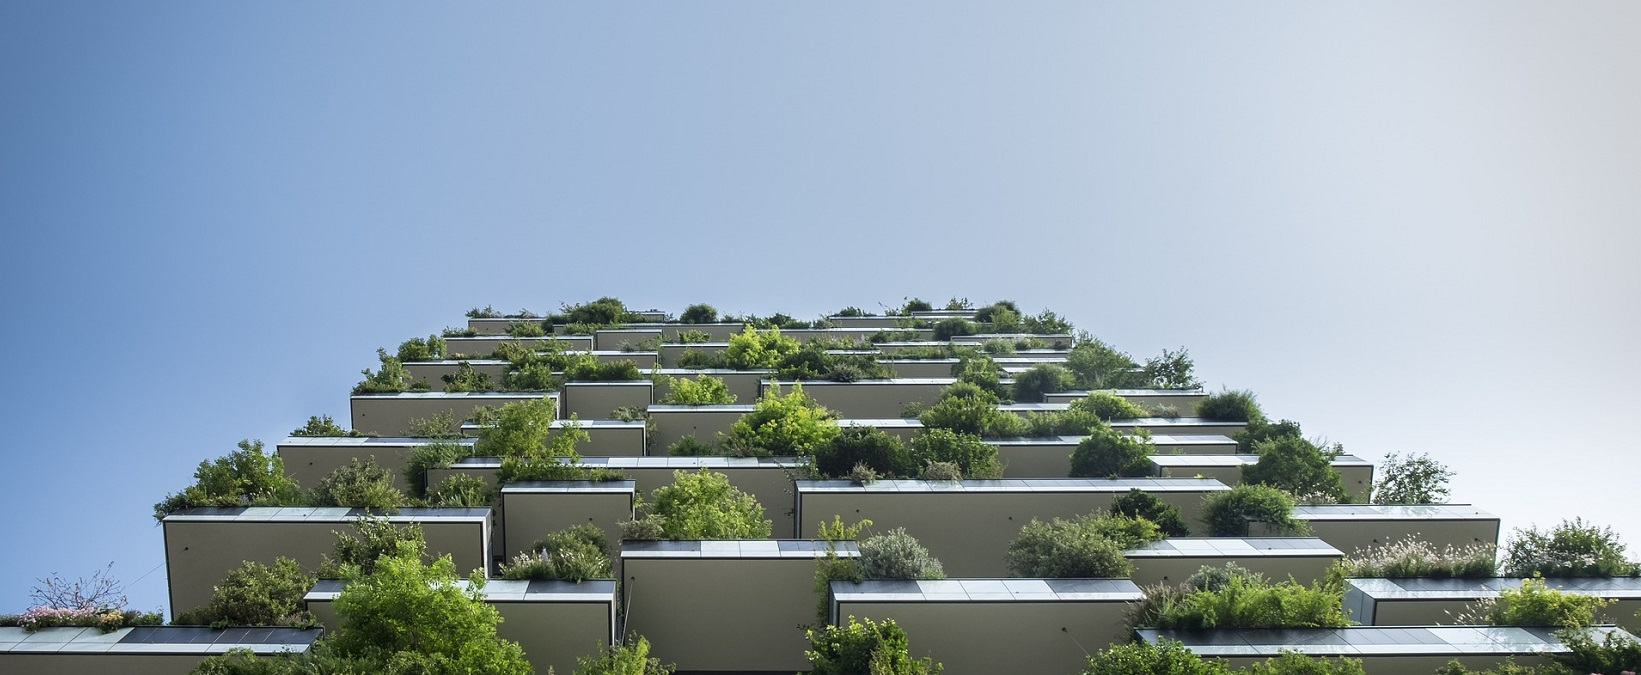 Now May Be Just the Moment to Re-Make the Green Building Agenda